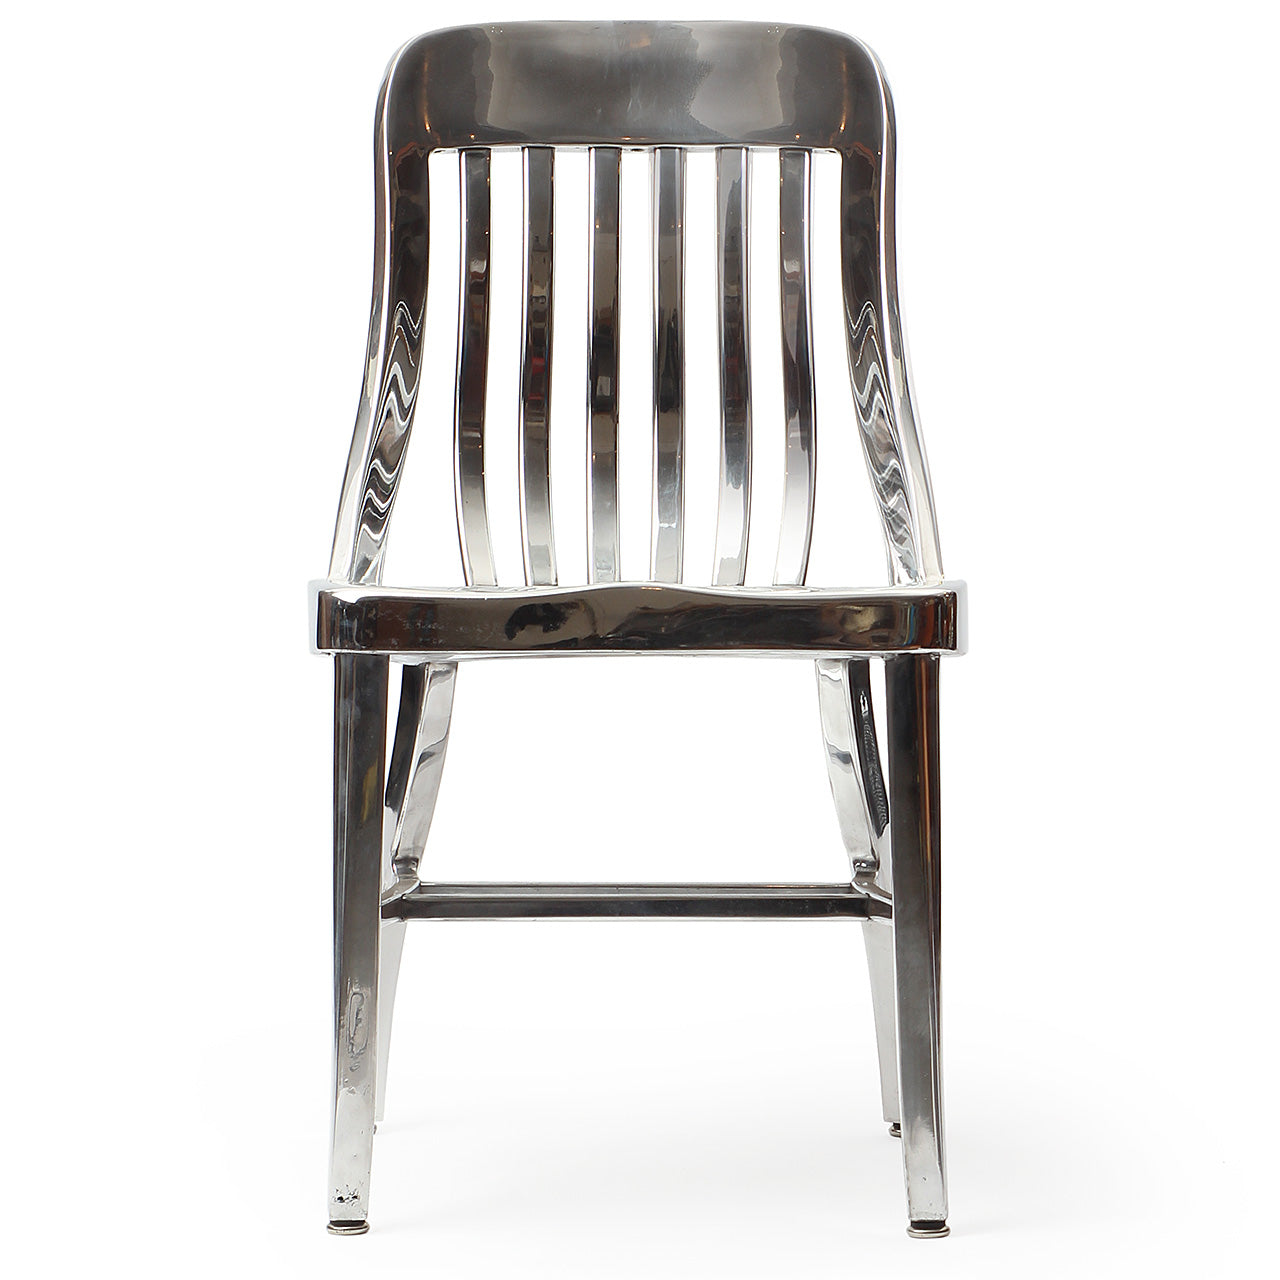 Polished Aluminum Chair - Goodform - WYETH